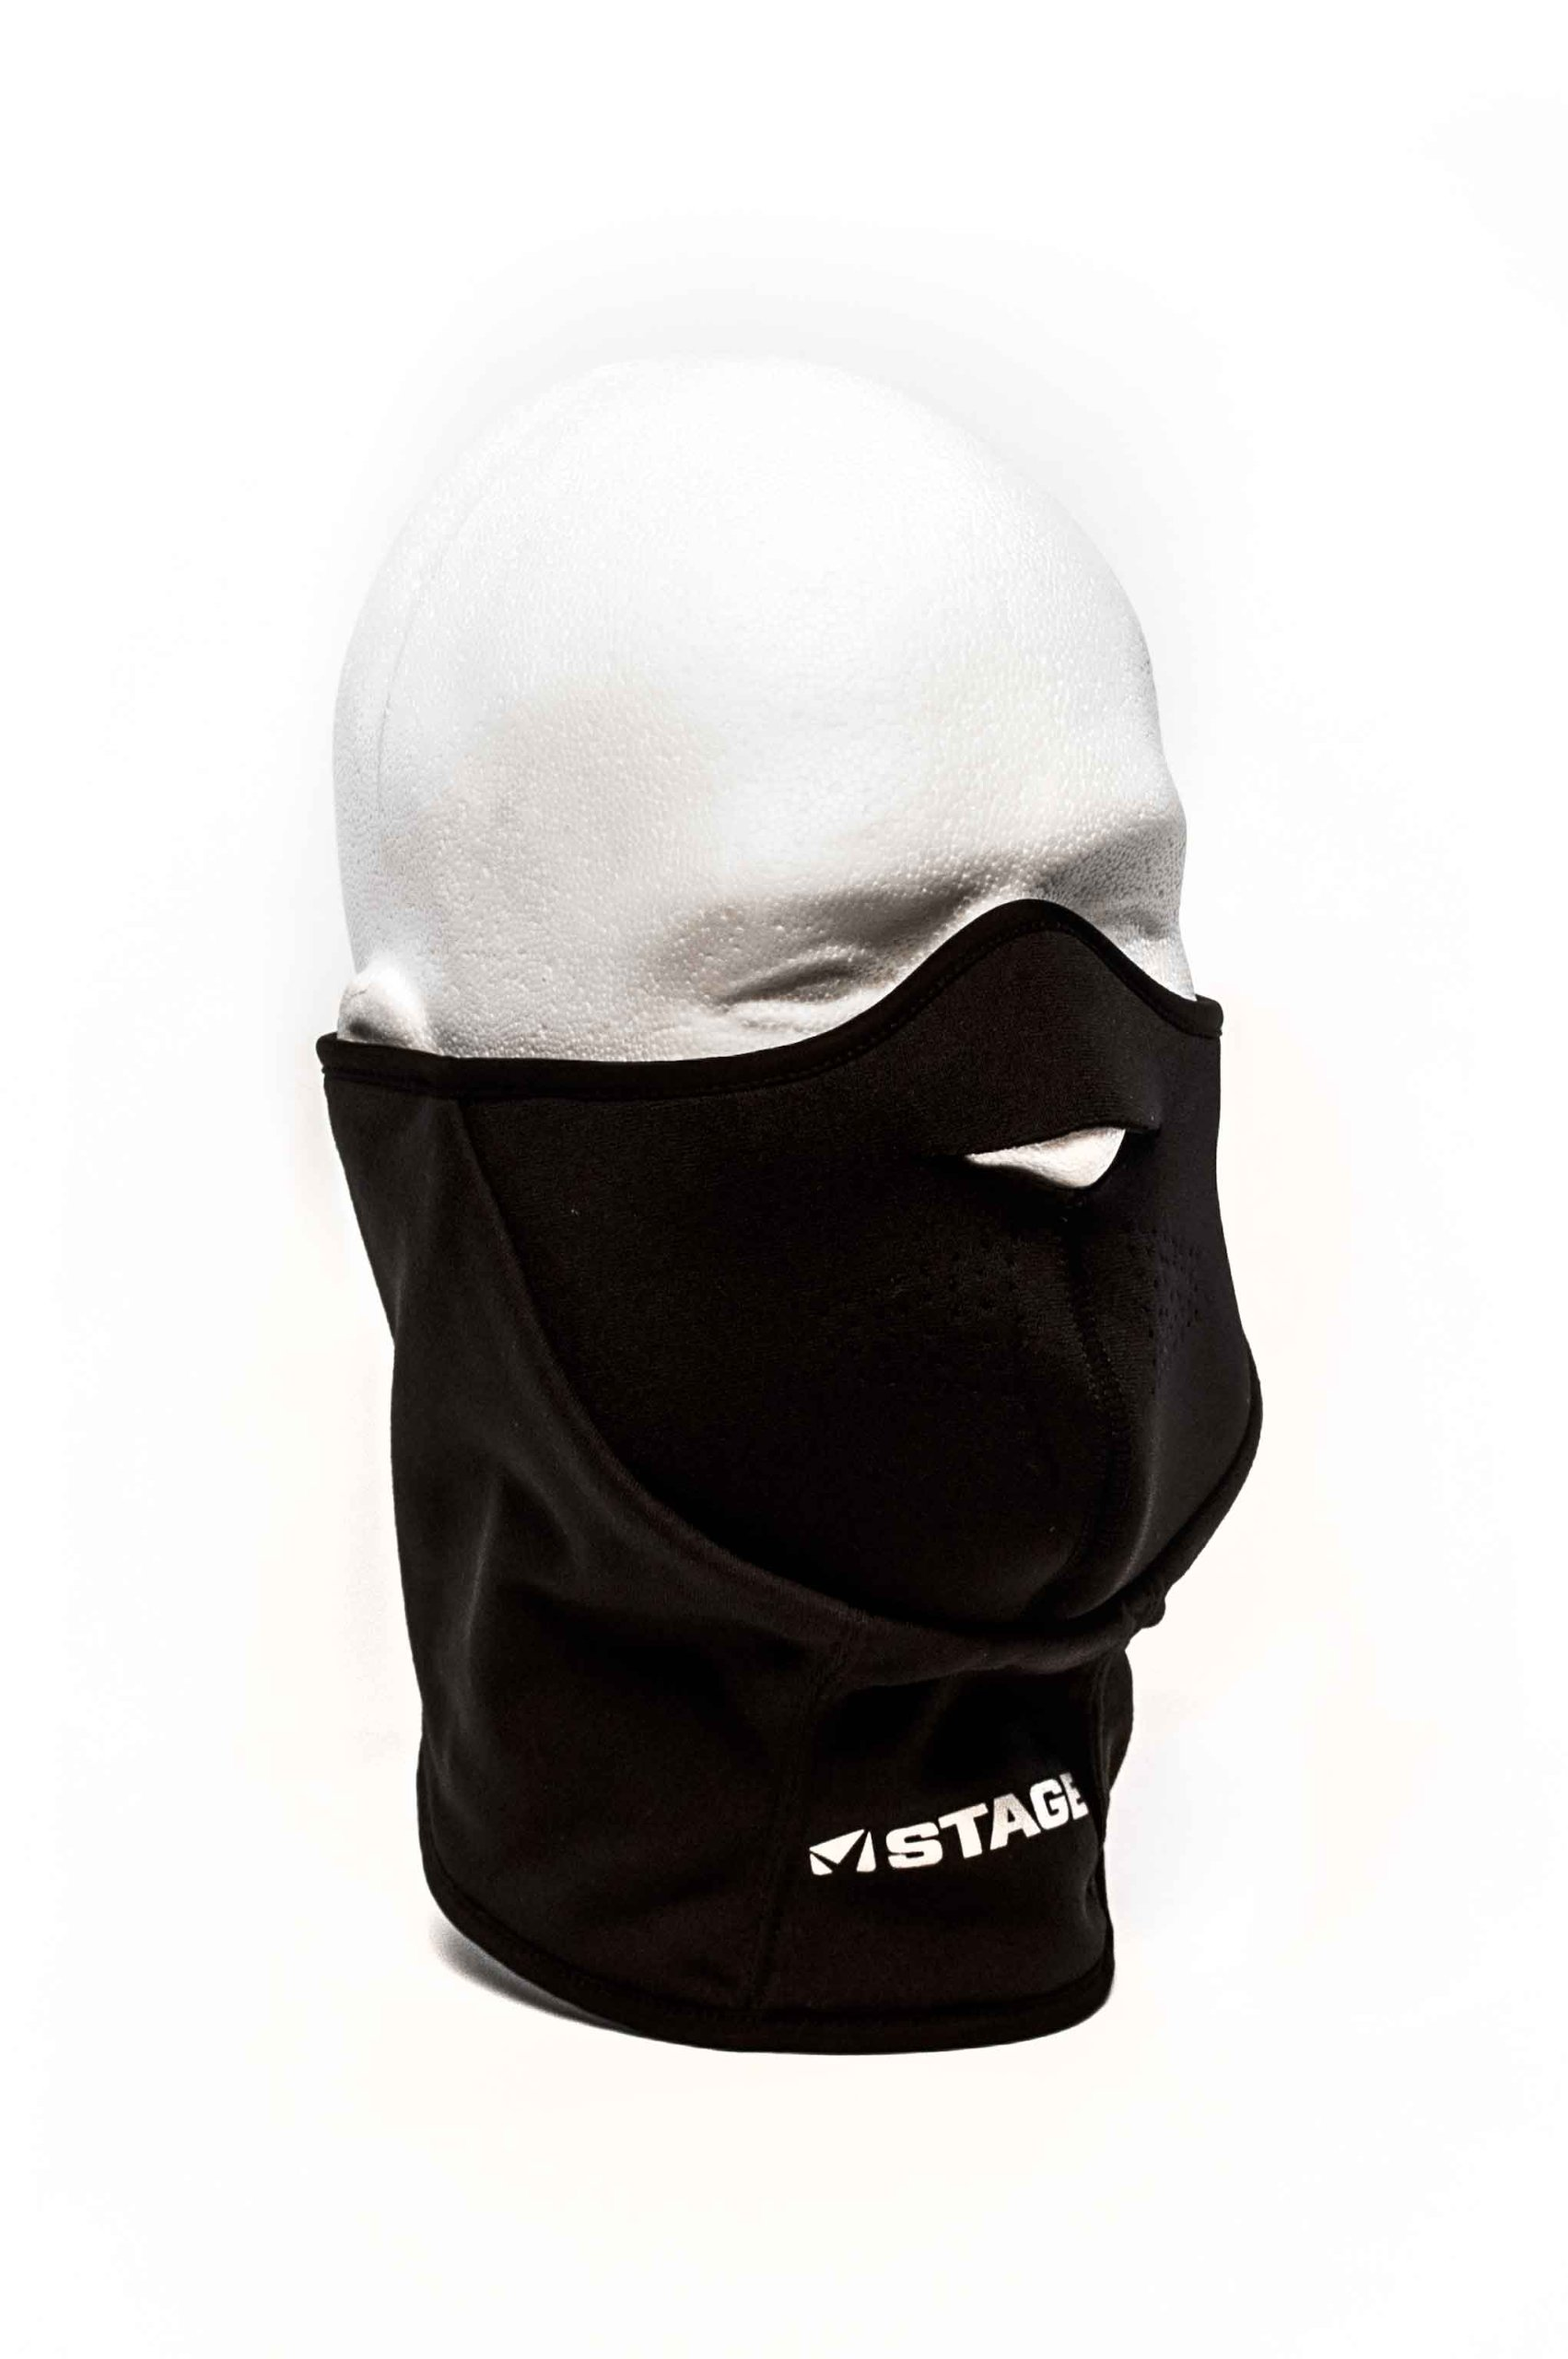 STAGE Facemask, Black, One Size